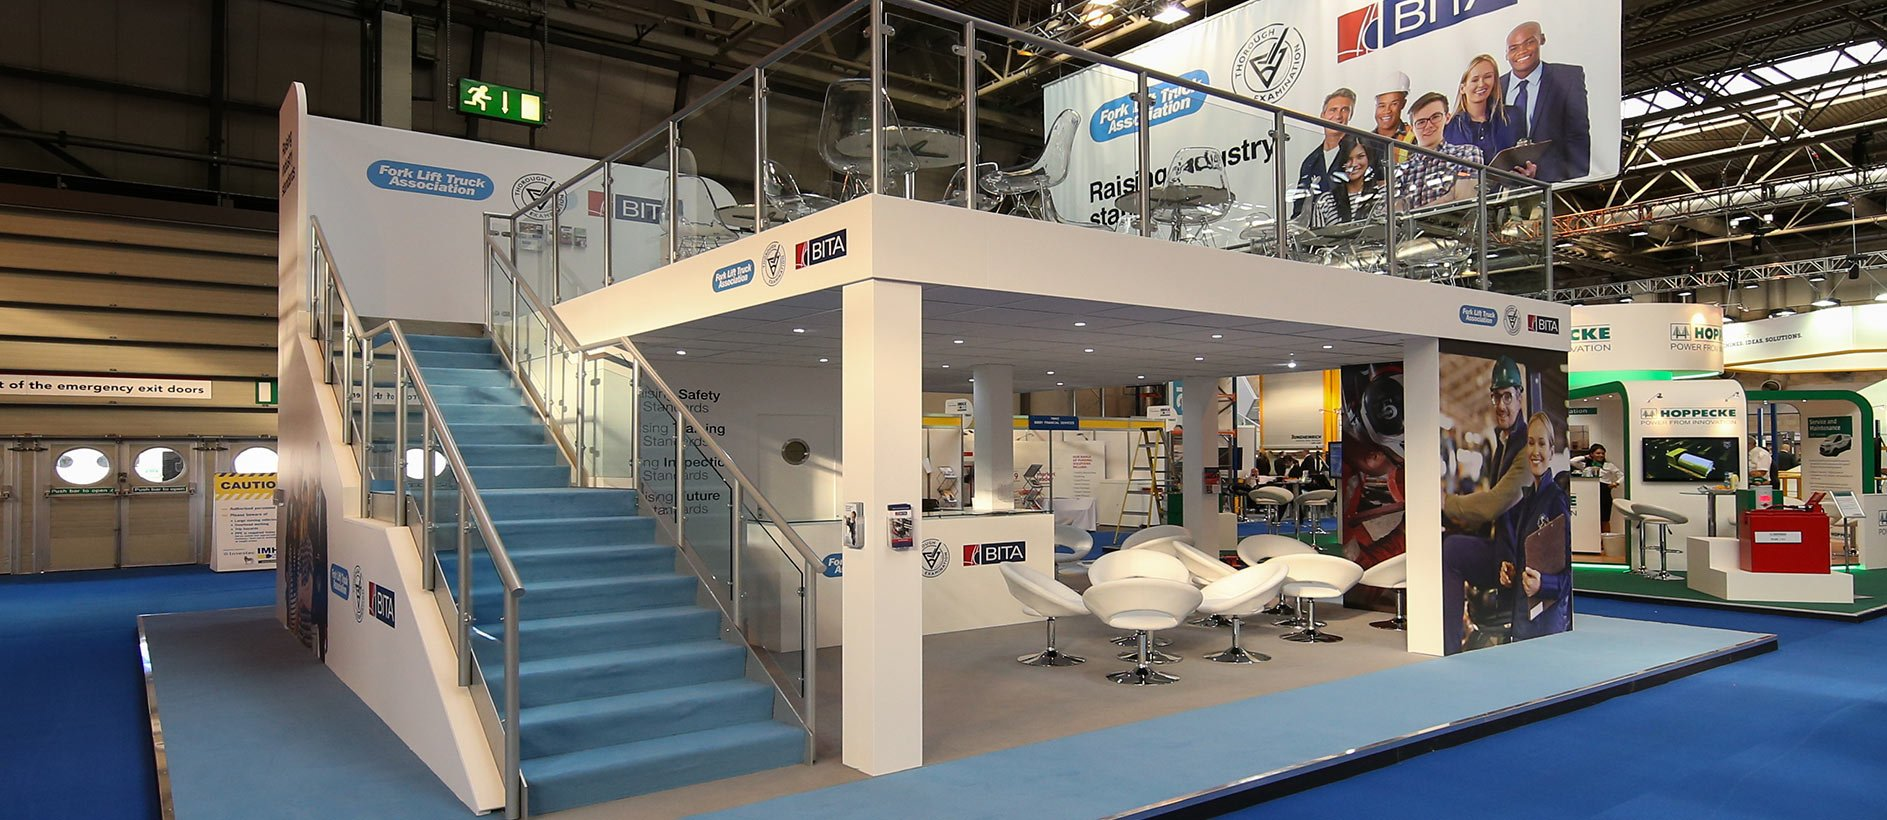 Exhibition stand display with furniture and graphics